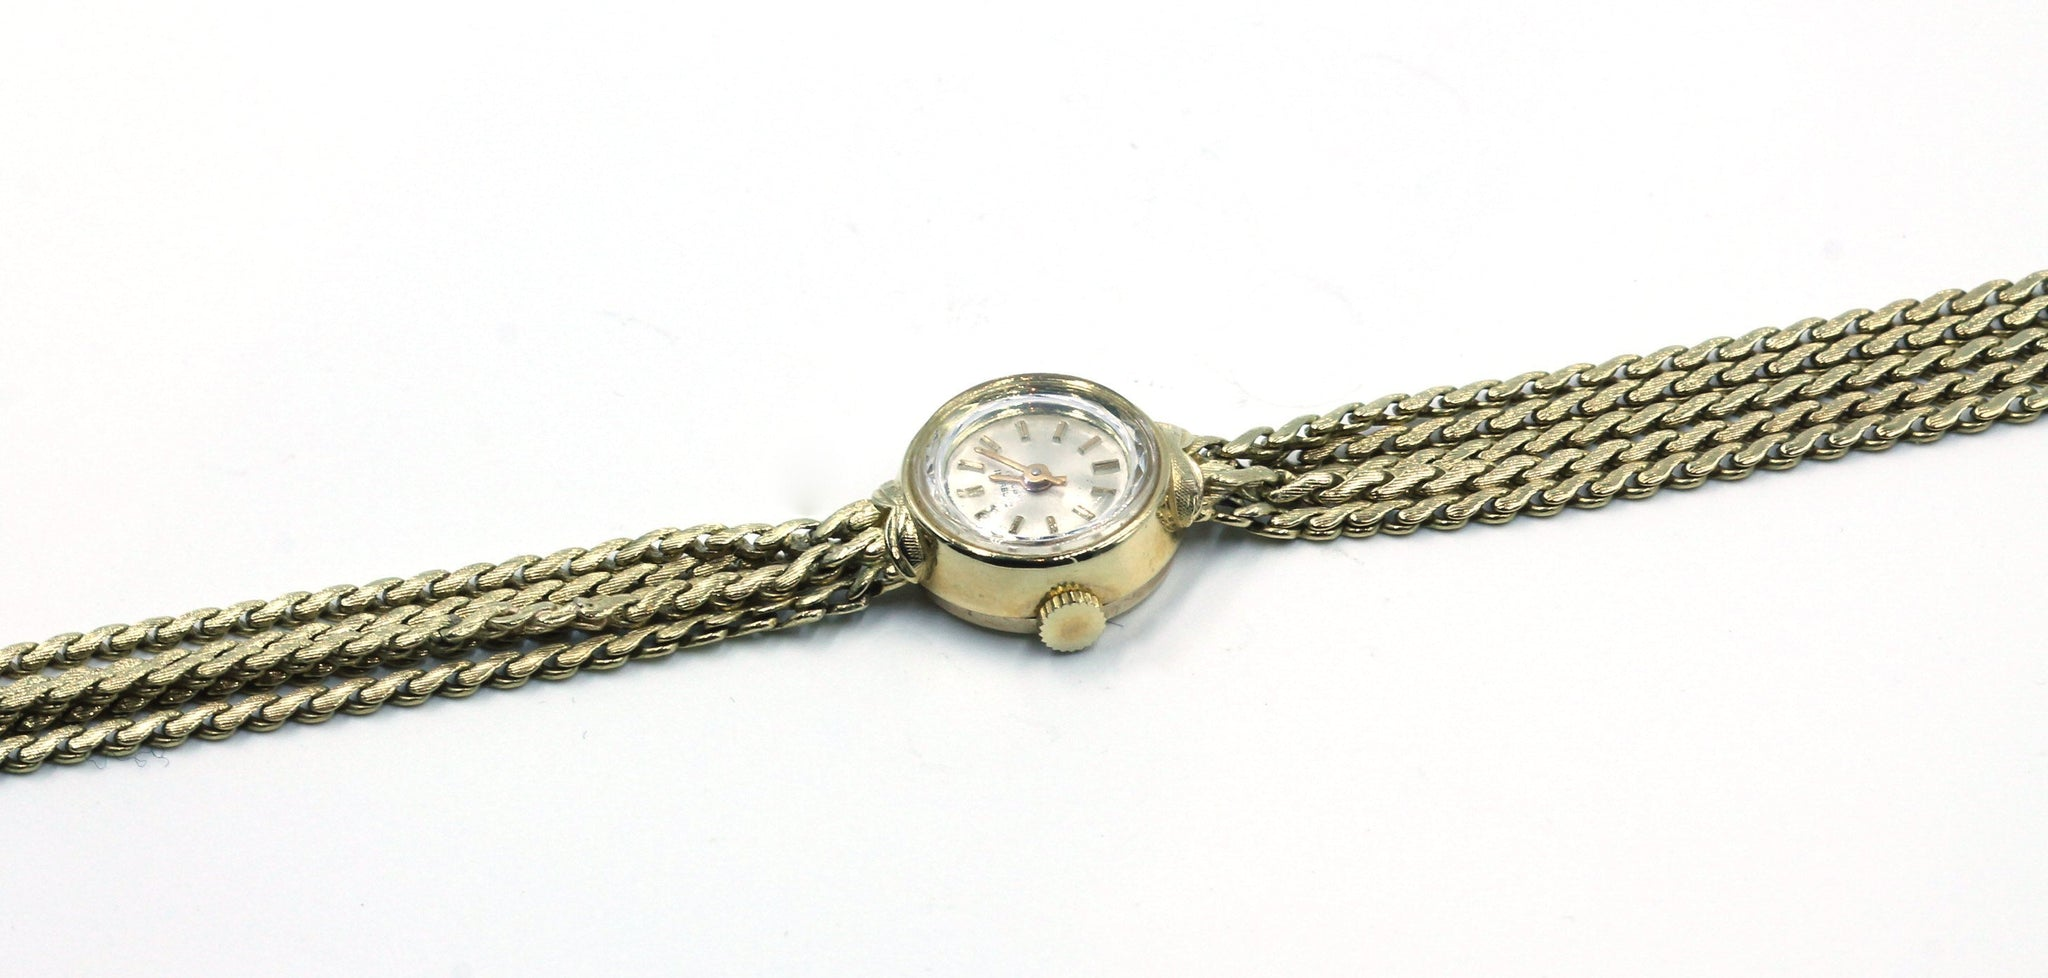 Vintage Gold Watch, SUPER SALE, SOLD